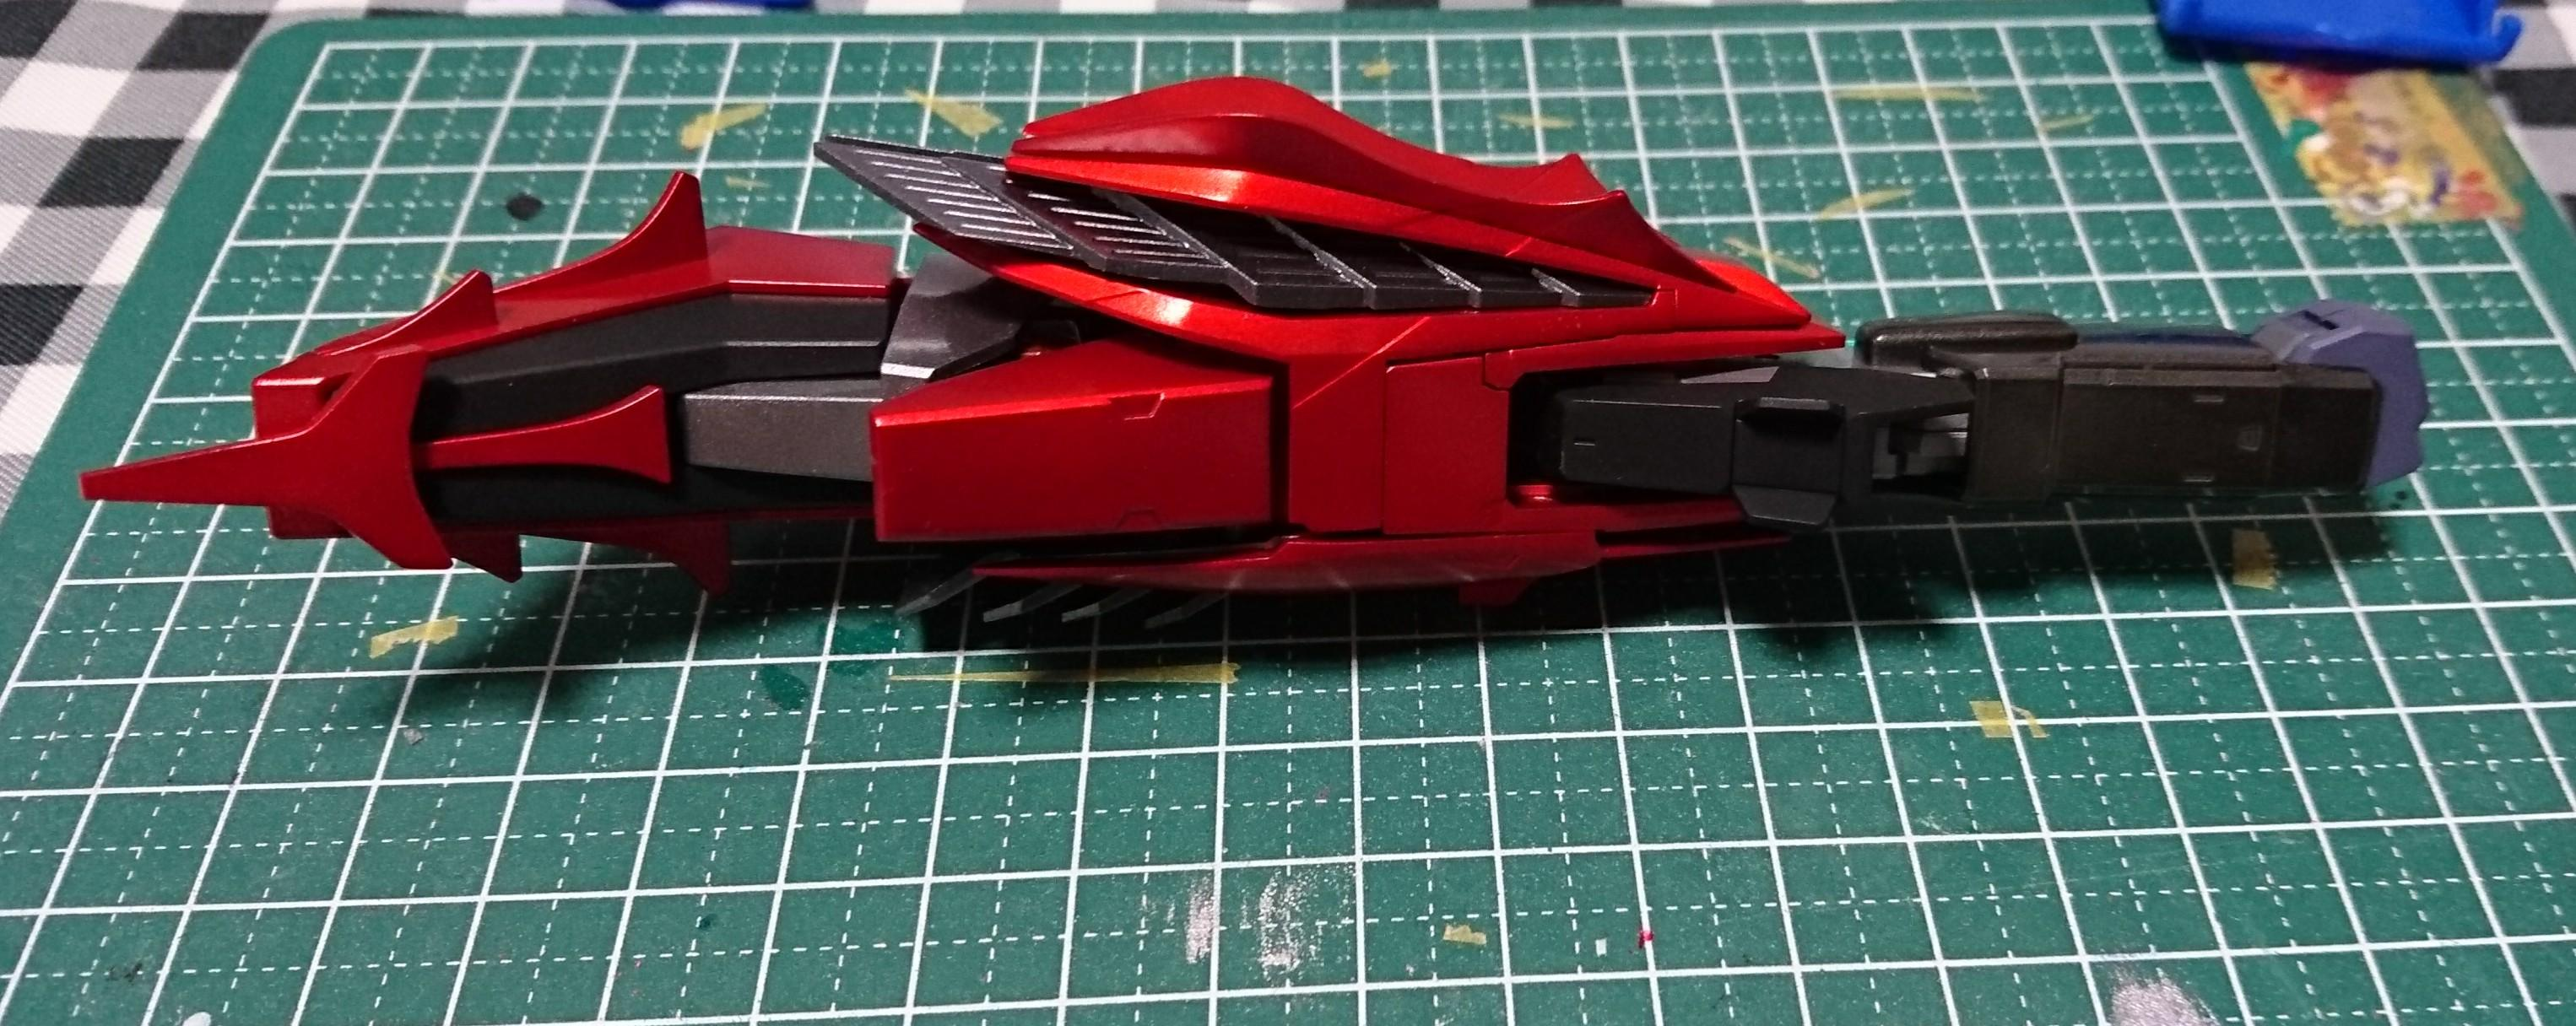 ZETA GUNDAM Ⅲ P2 TYPE [RED ZETA]